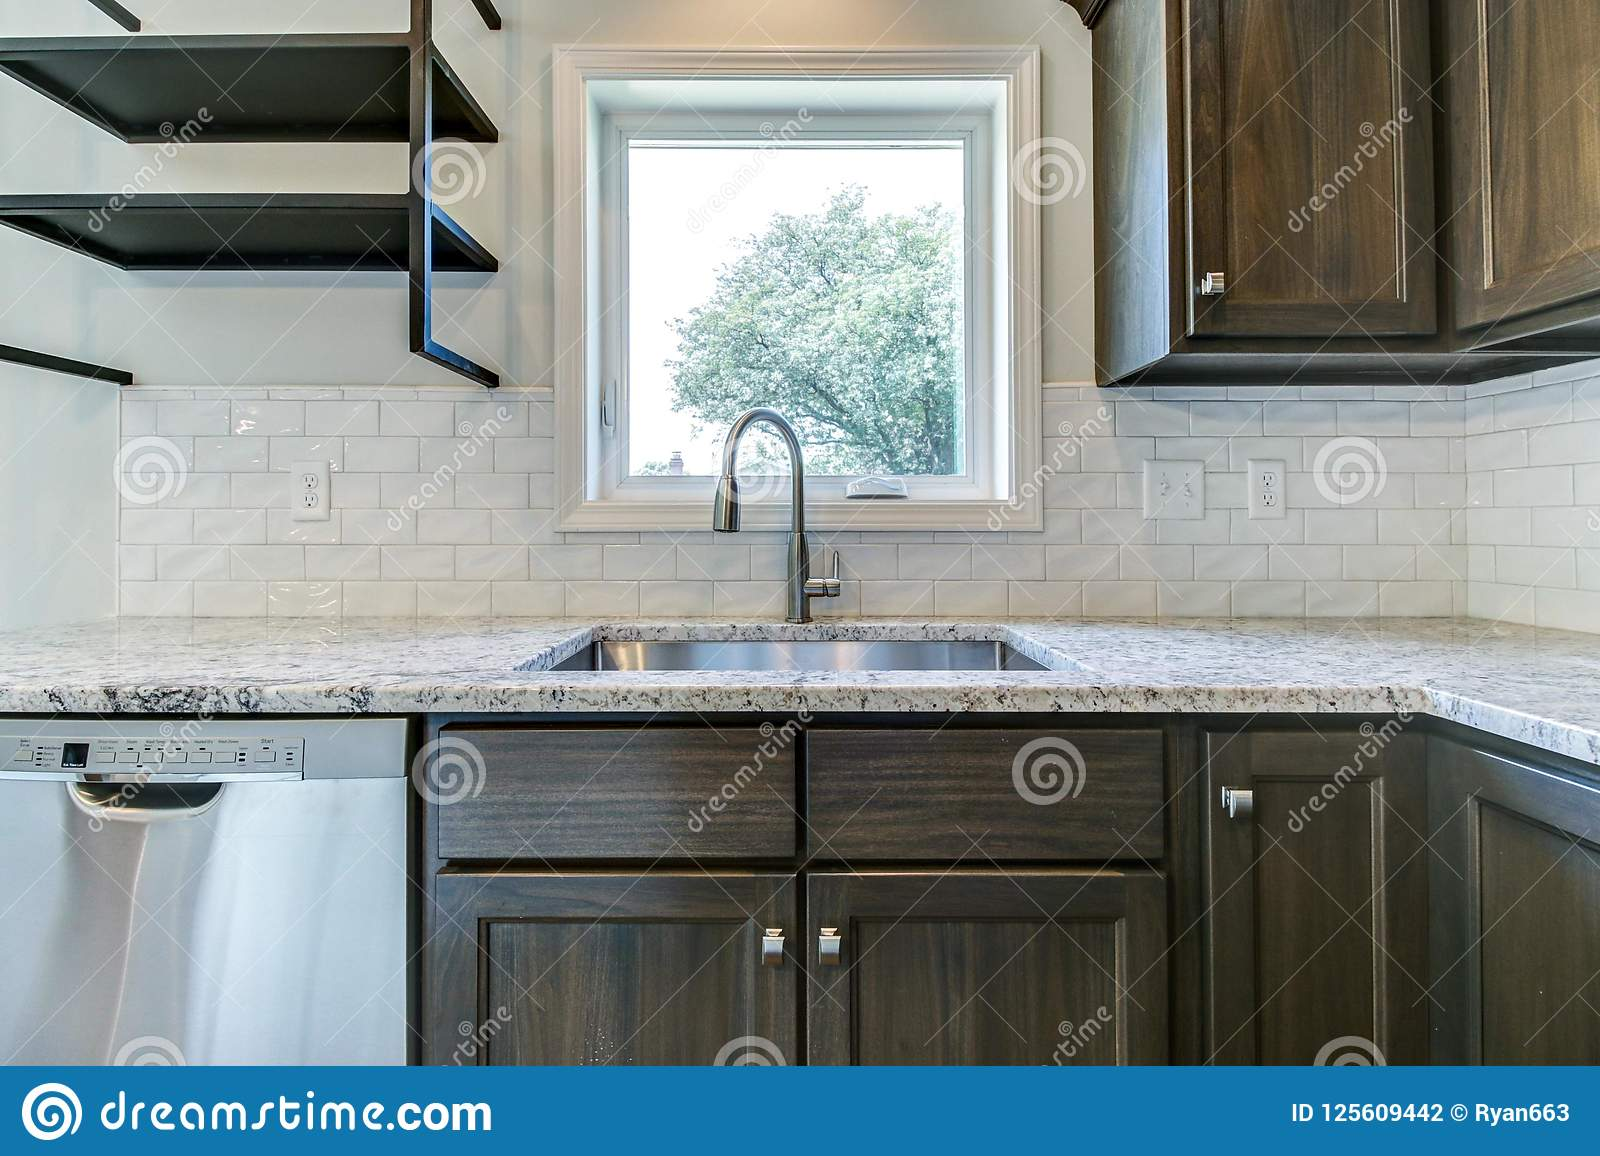 Kitchen Sink With Subway Tile Backspash Stock Photo Image Of Construction Iowa 125609442